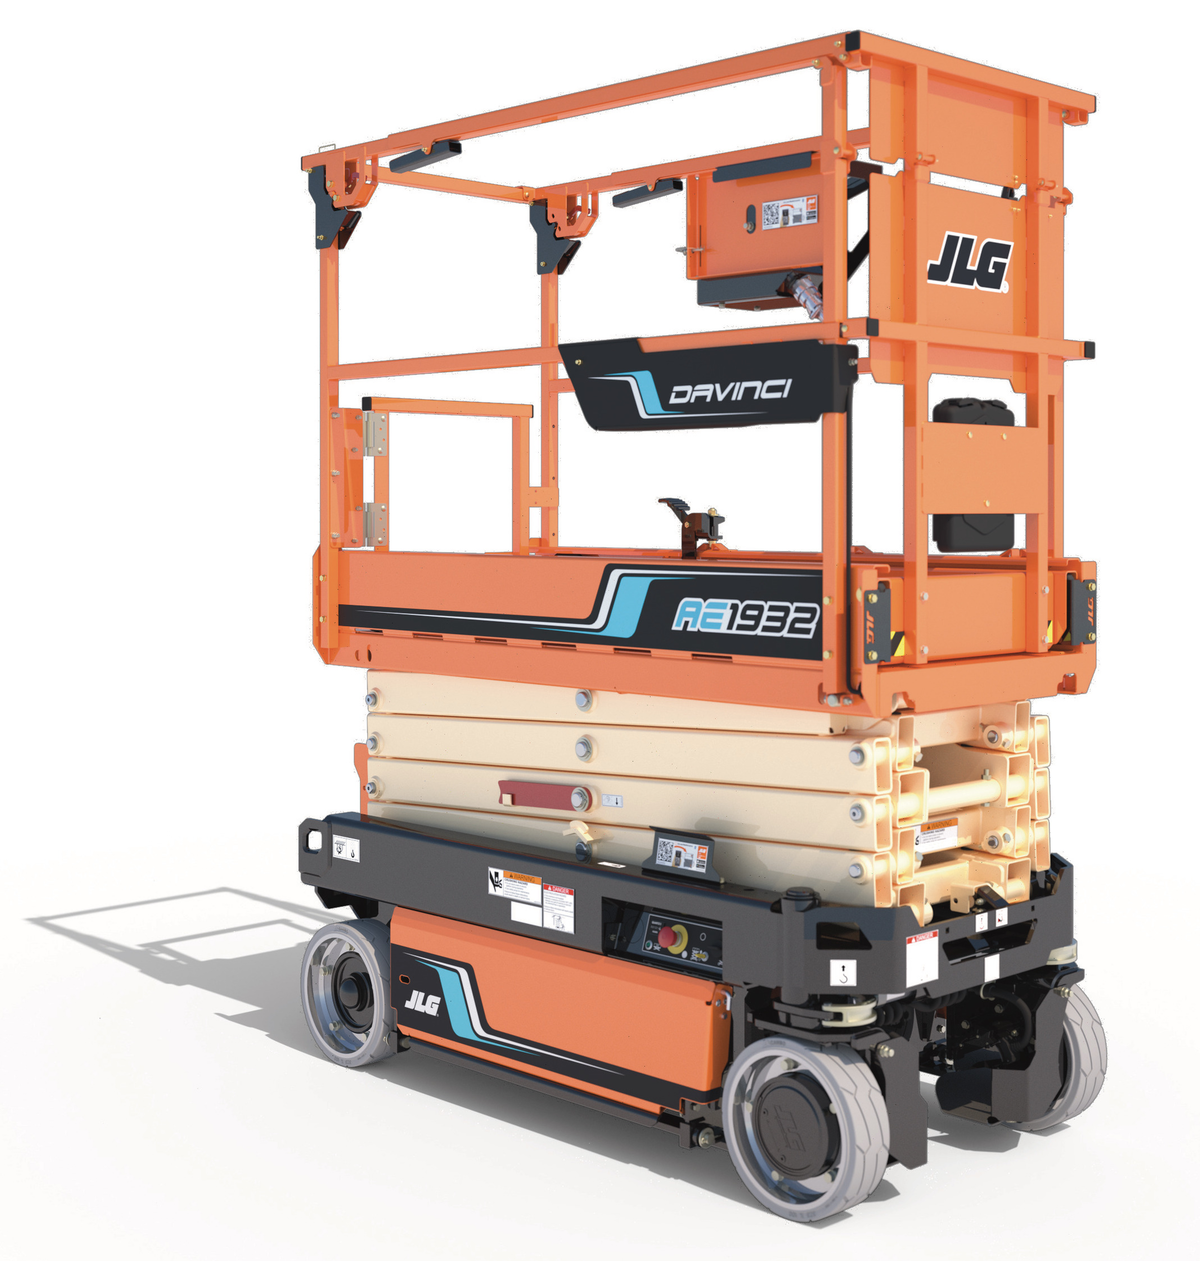 Cracking the DaVinci Code: How JLG Created the All-Electric DaVinci Scissor Lift With No Hydraulics